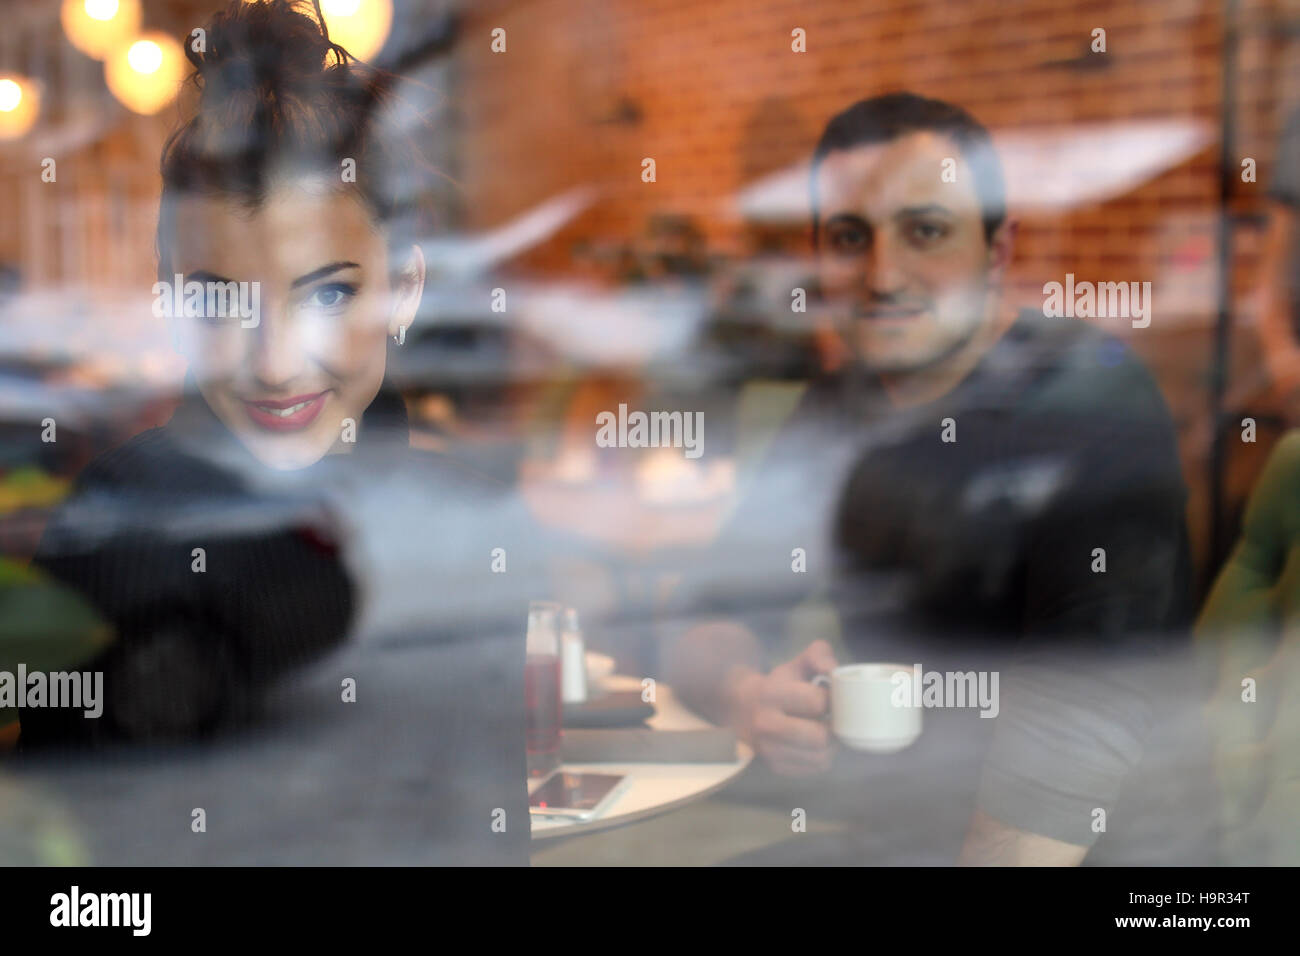 young couple meets in a cafe on a date - Stock Image